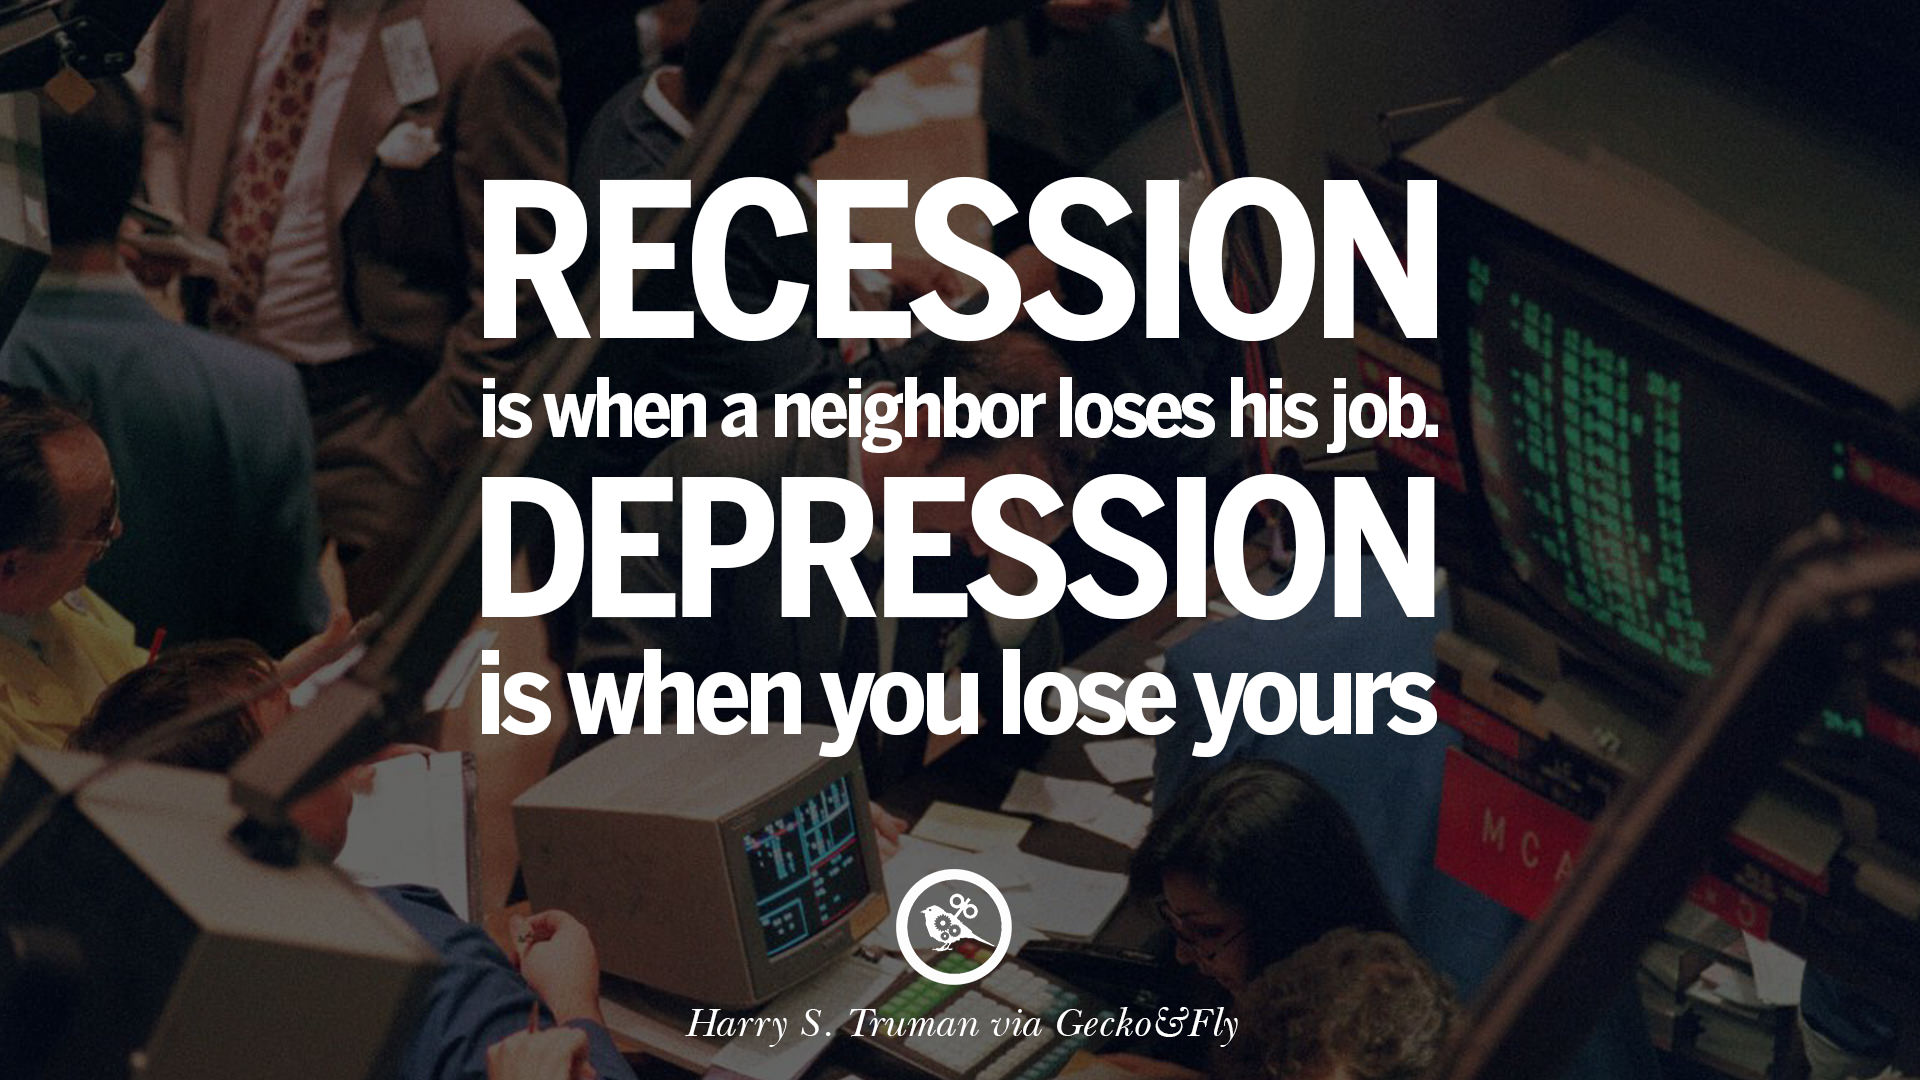 economic recession Experts across various surveys are predicting a 2020 recession though it won't be triggered by the housing market as with the last major economic downturn.